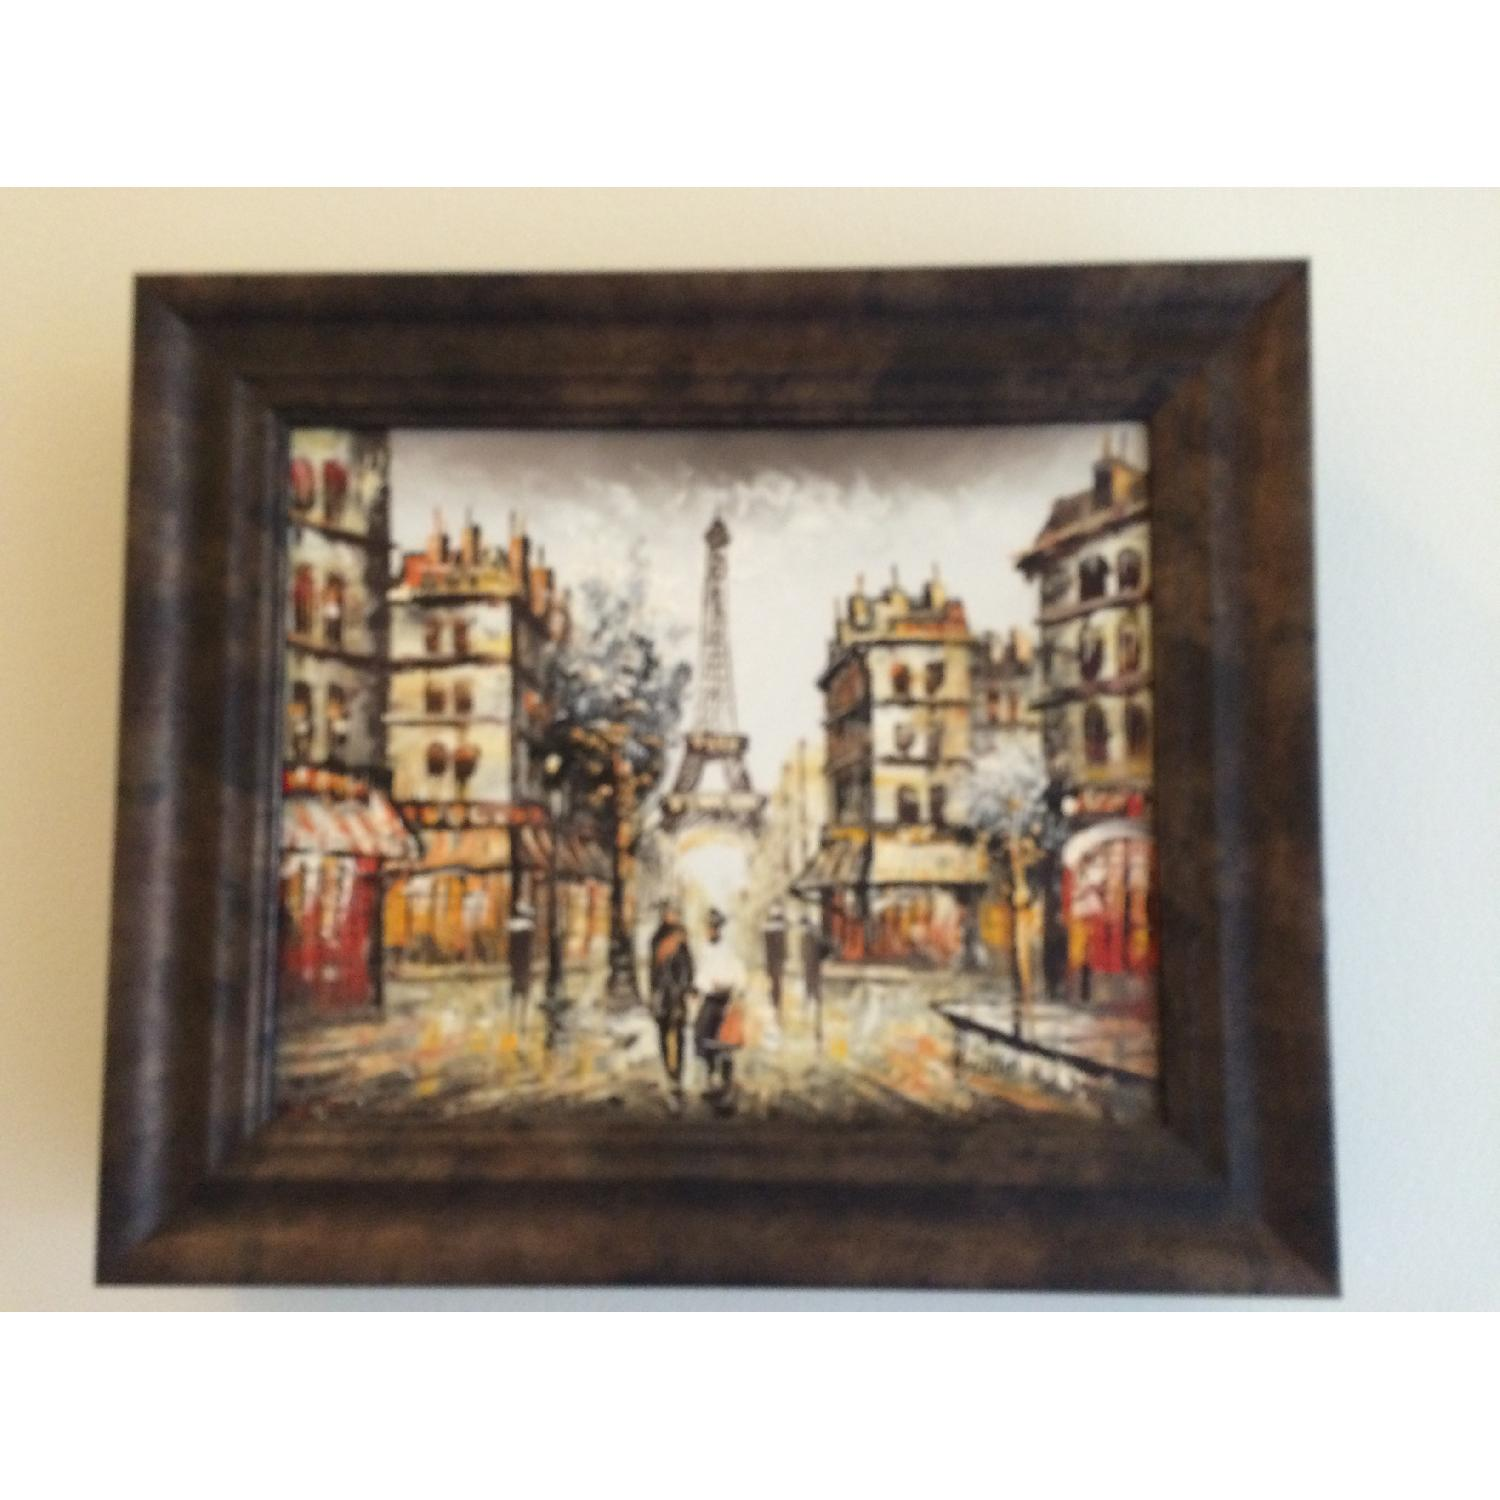 Framed Eiffel Tower Painting from Montmartre Paris - image-1